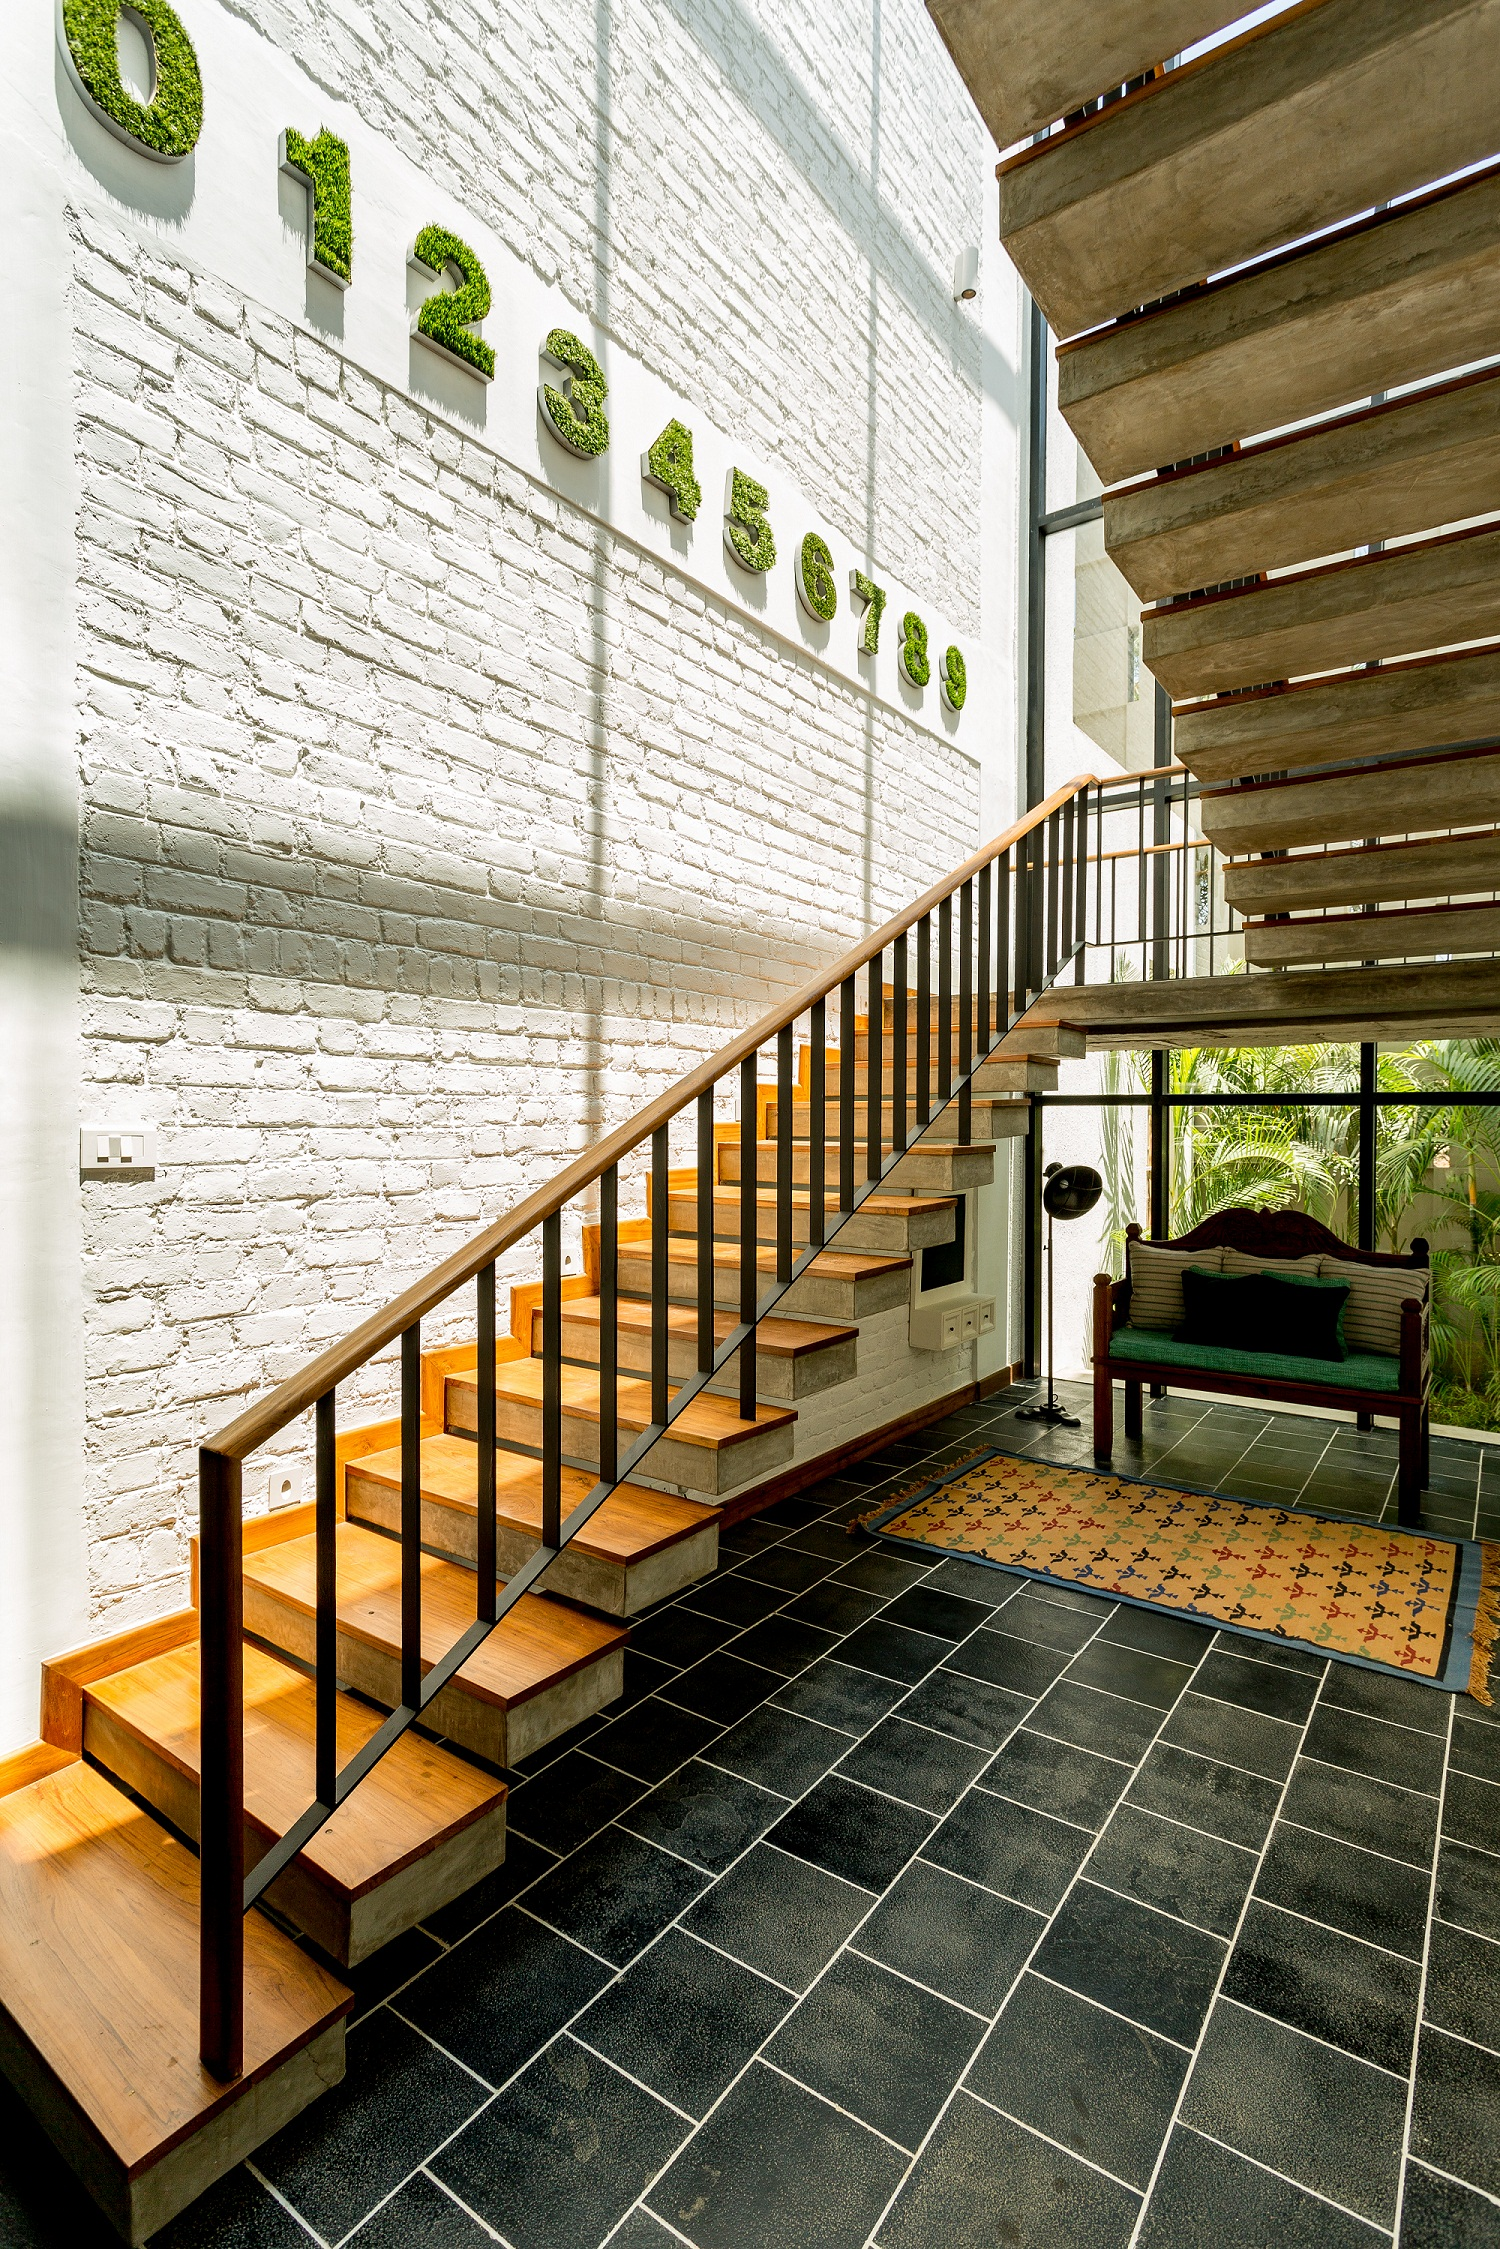 Stairwell- seating nook